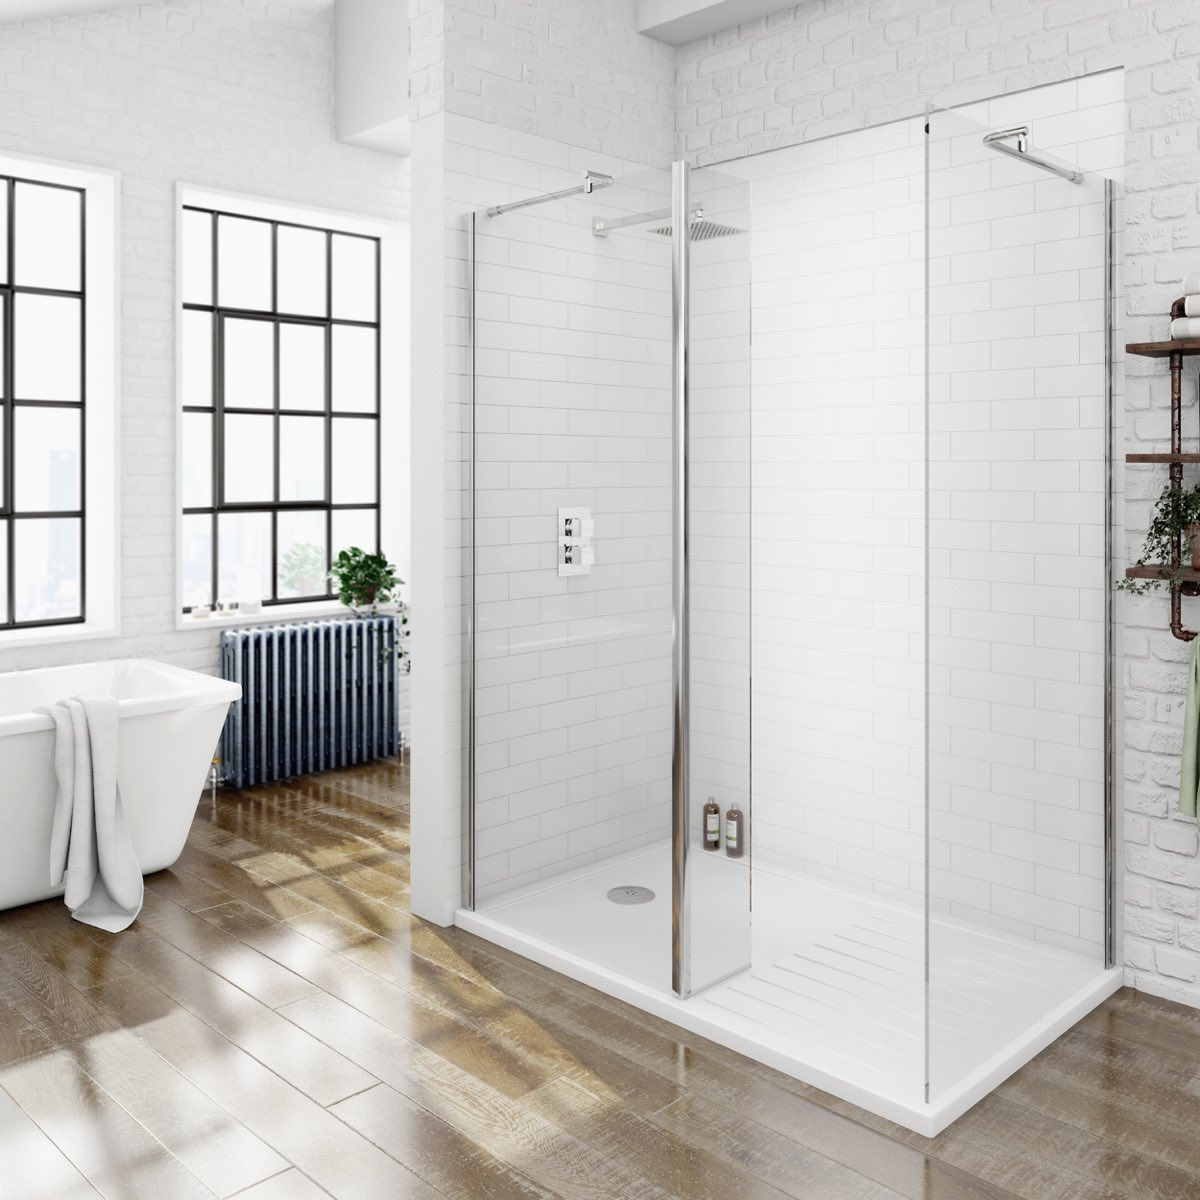 What to Consider When Buying and Installing a Door for Your Shower